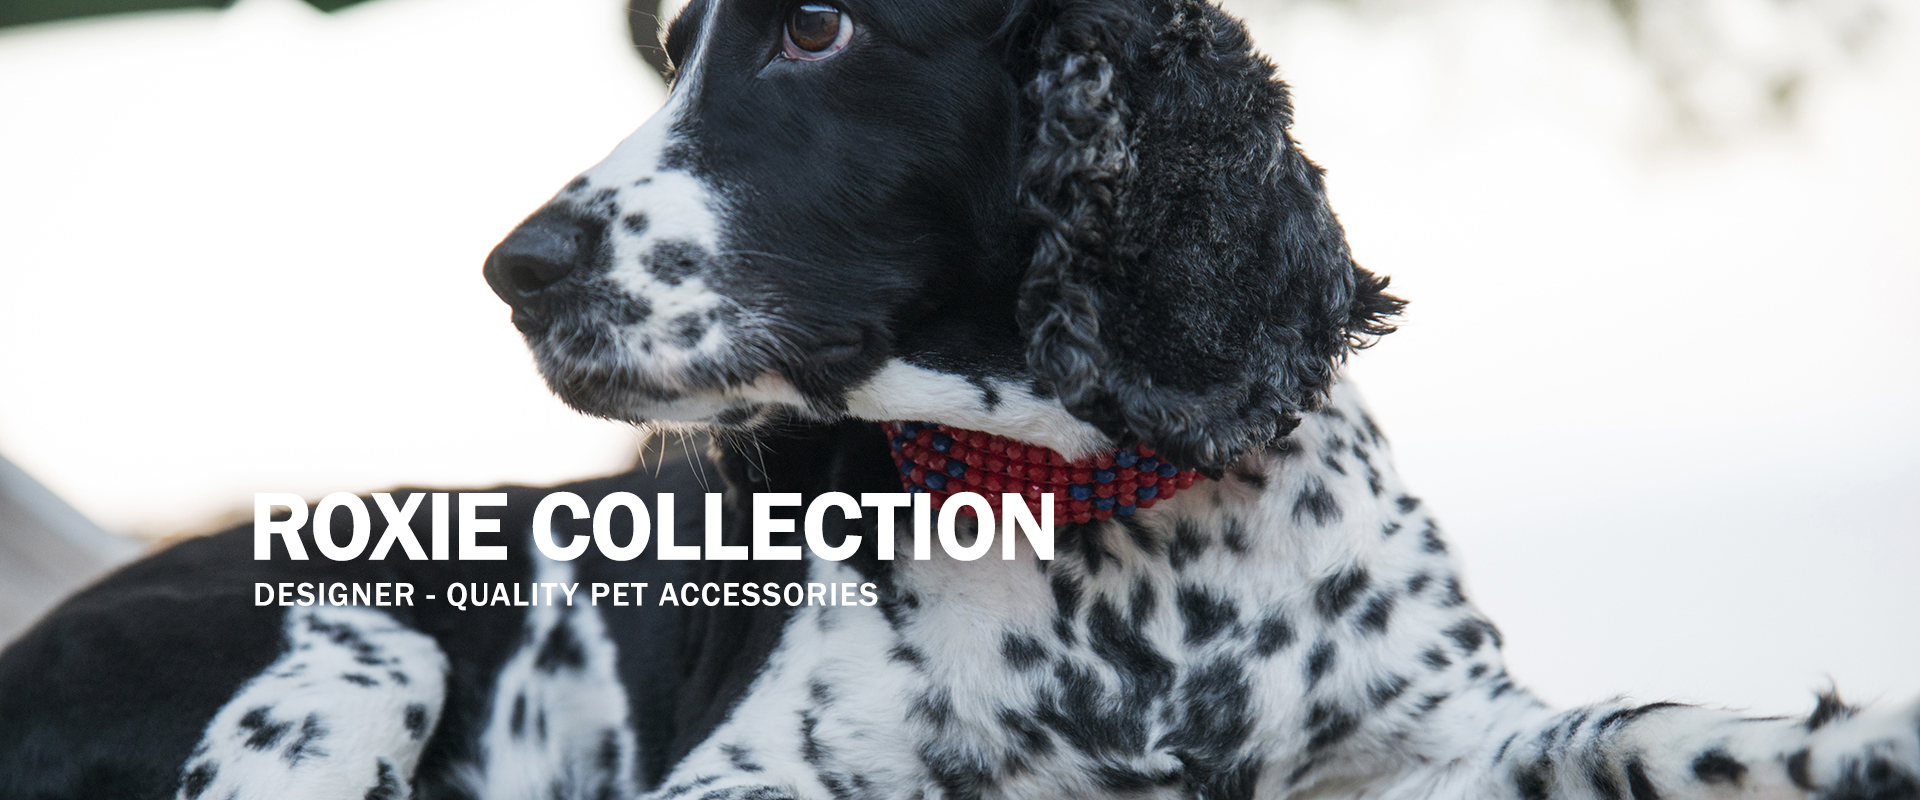 Roxie Collection | Designer-quality pet accessories by zikos